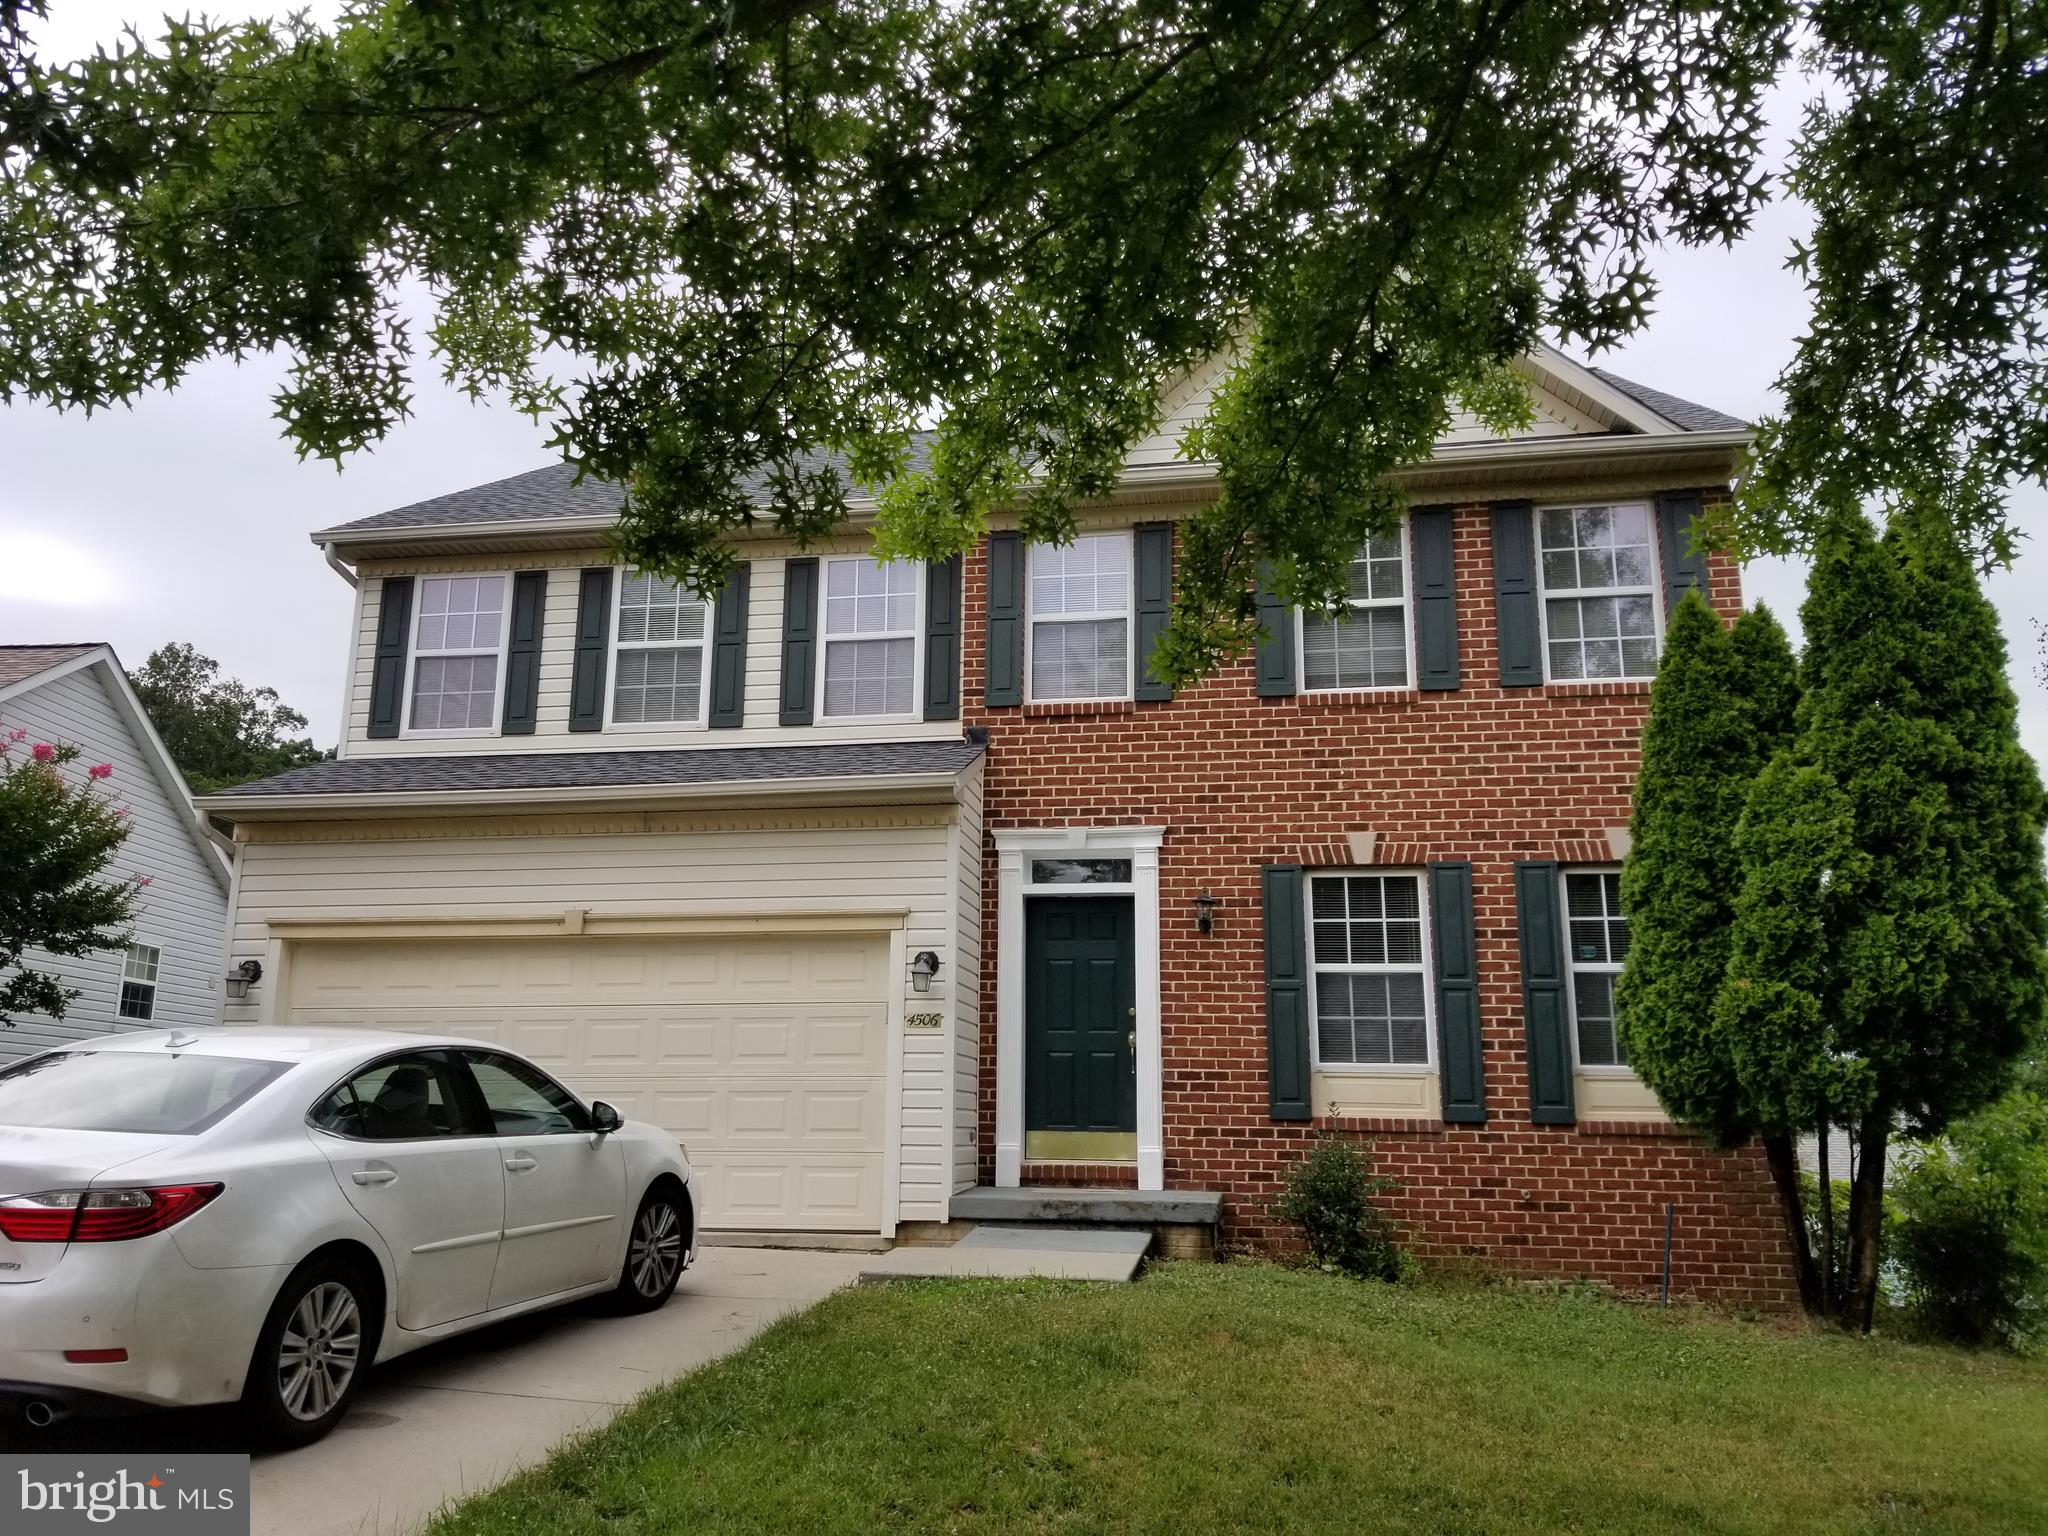 4506 KING GEORGE COURT, BALTIMORE, MD 21236